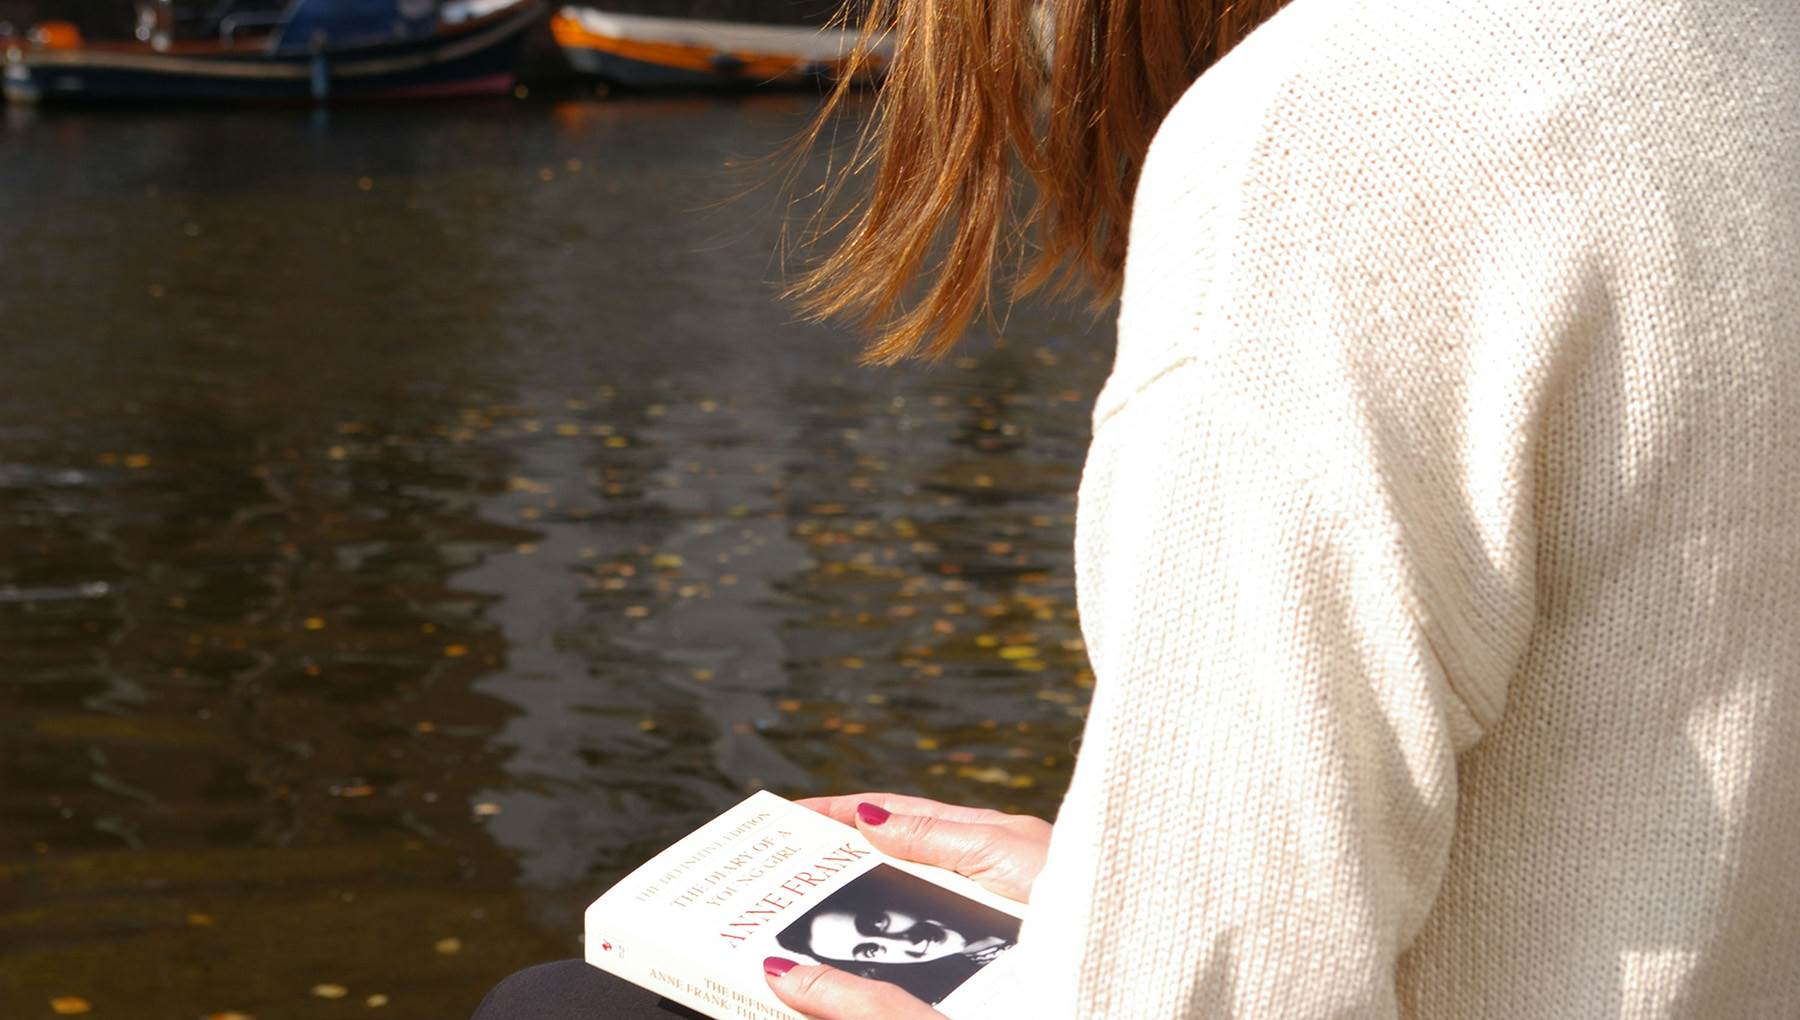 Diary of Anne Frank Amsterdam gift